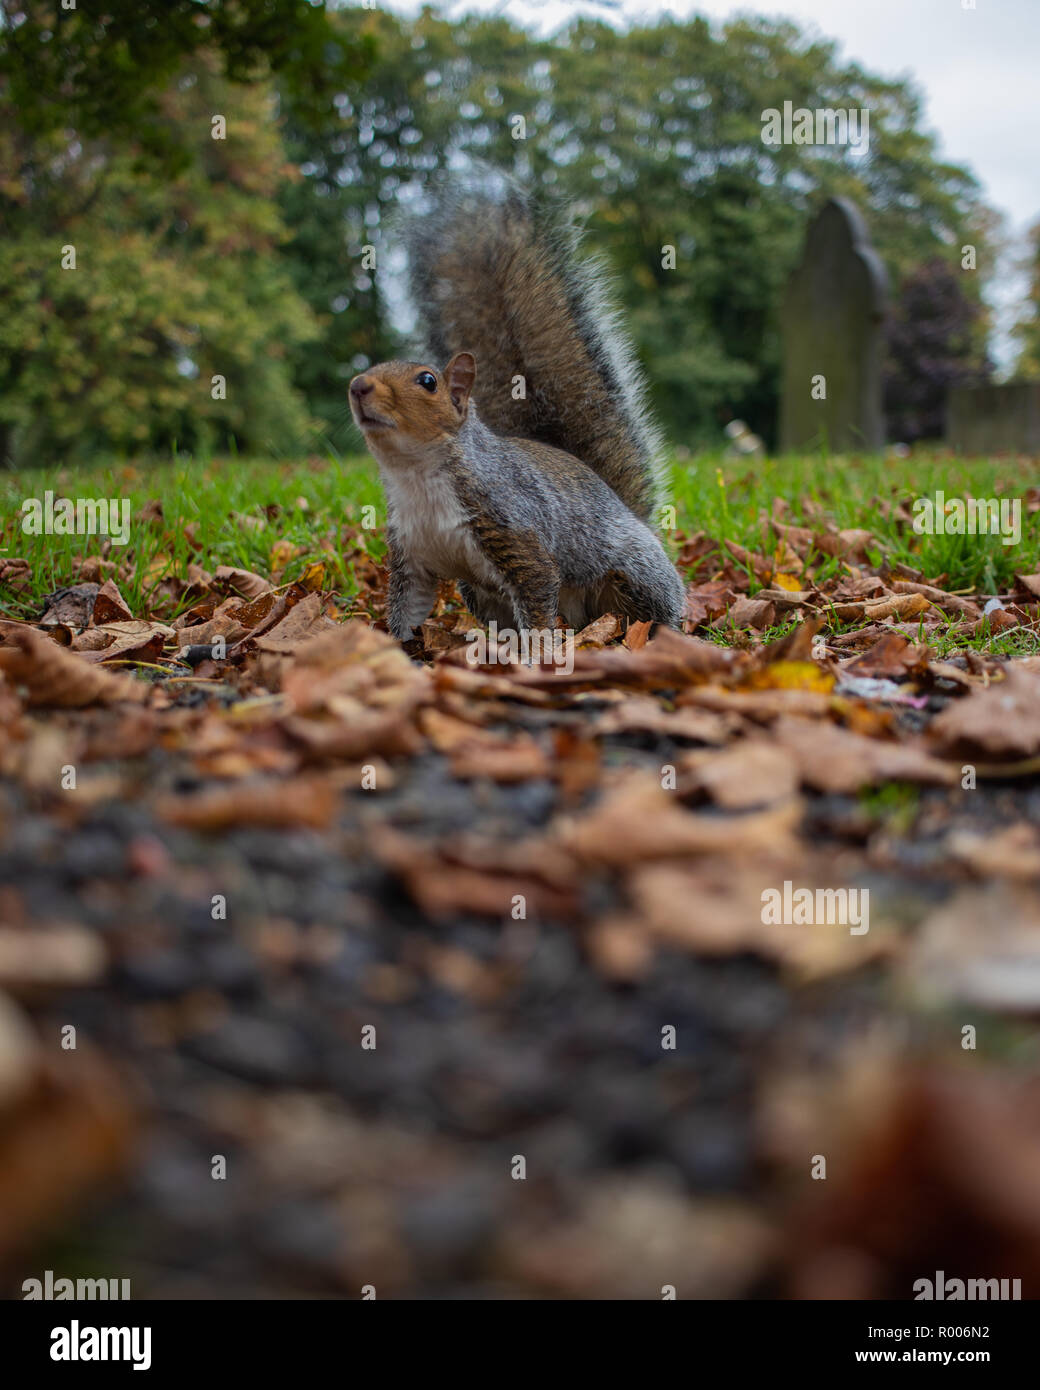 A grey squirrel sitting on brown autumn leaves Stock Photo